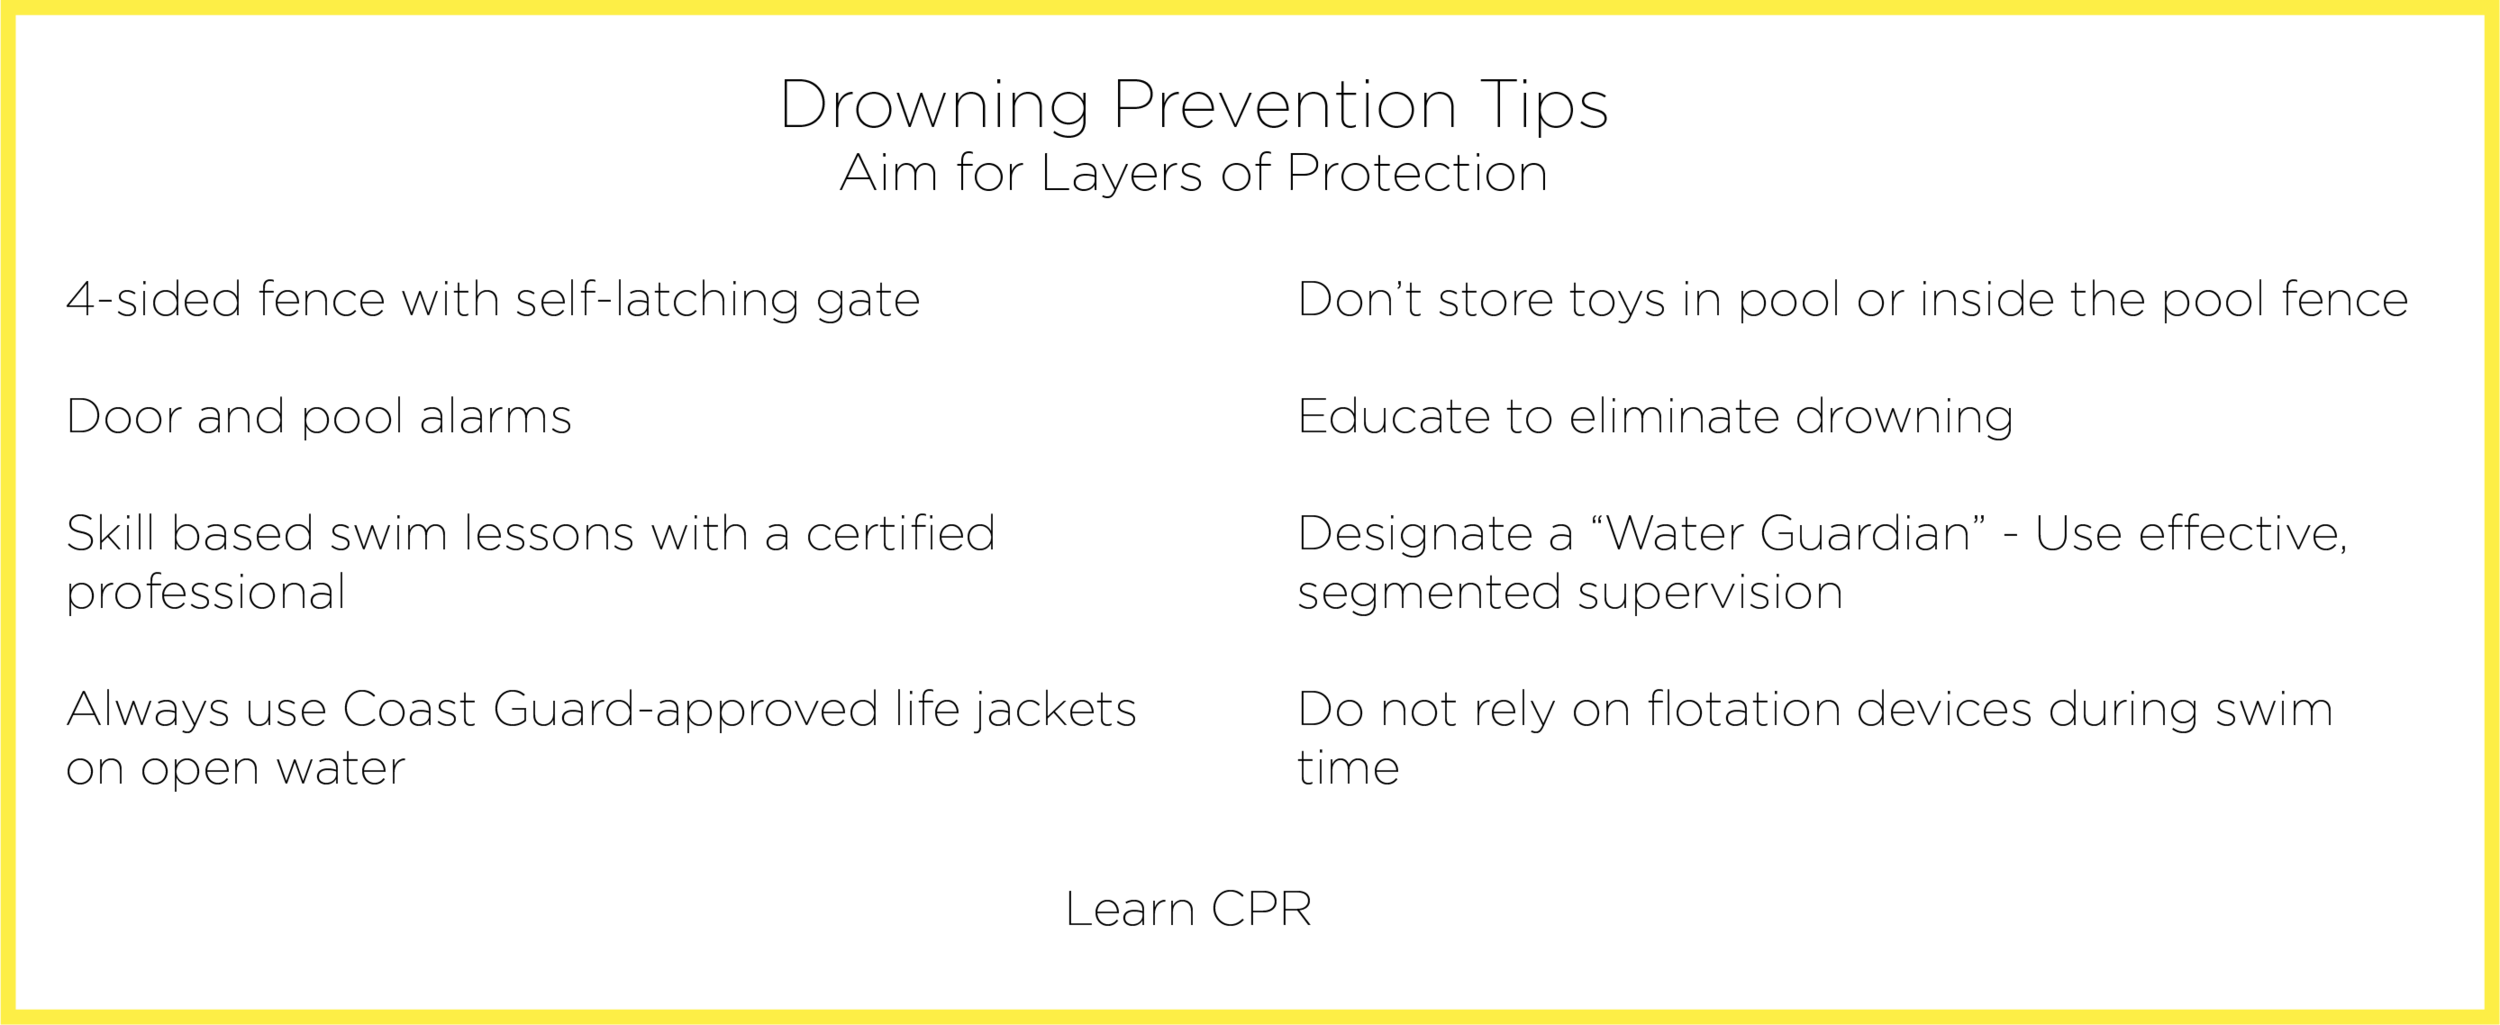 Drowing Prevention Tips 2.png